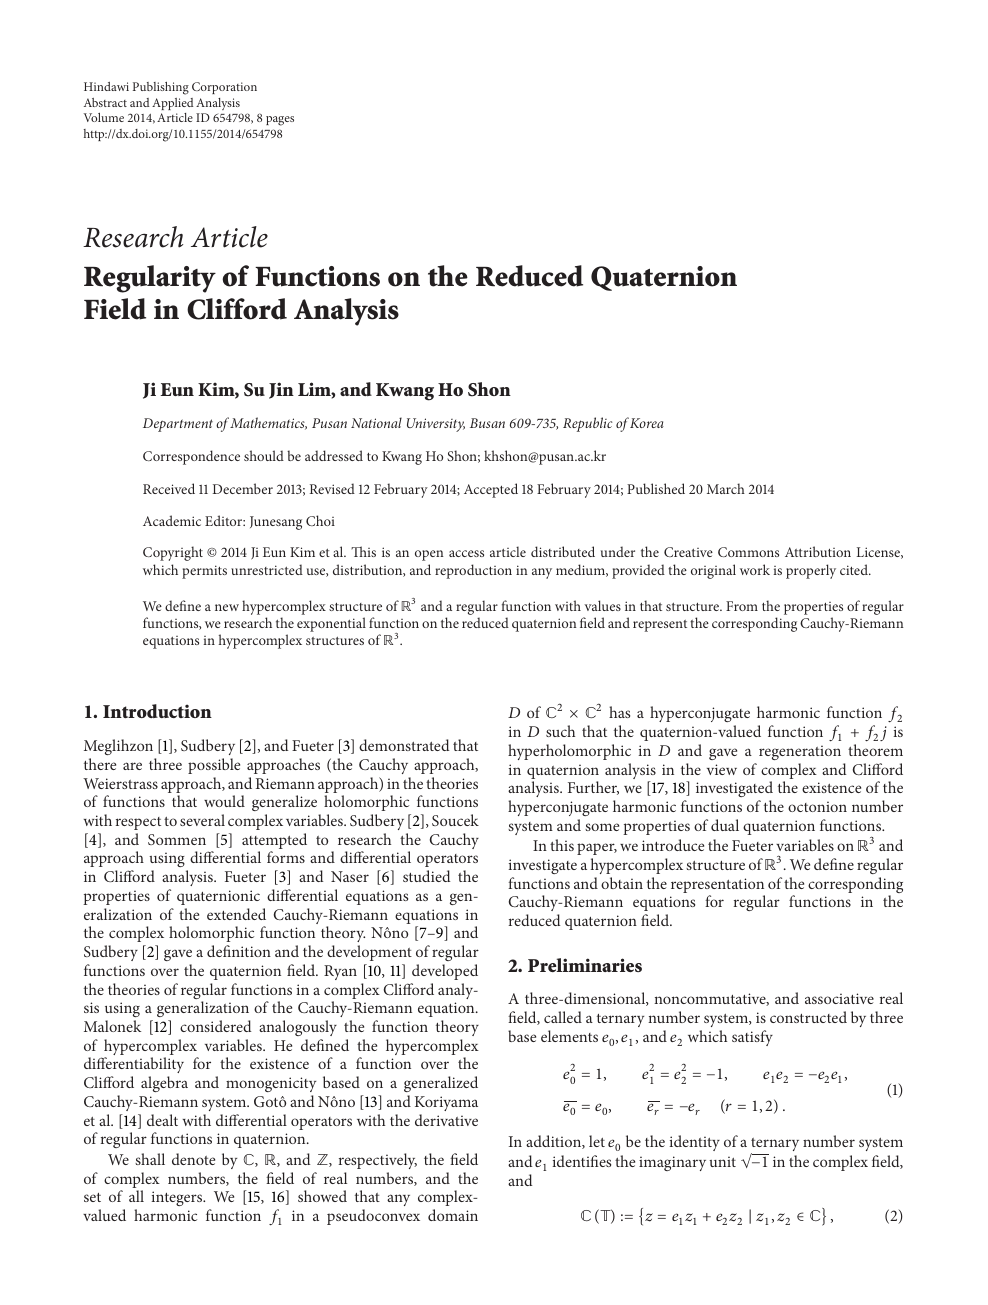 Regularity of Functions on the Reduced Quaternion Field in Clifford